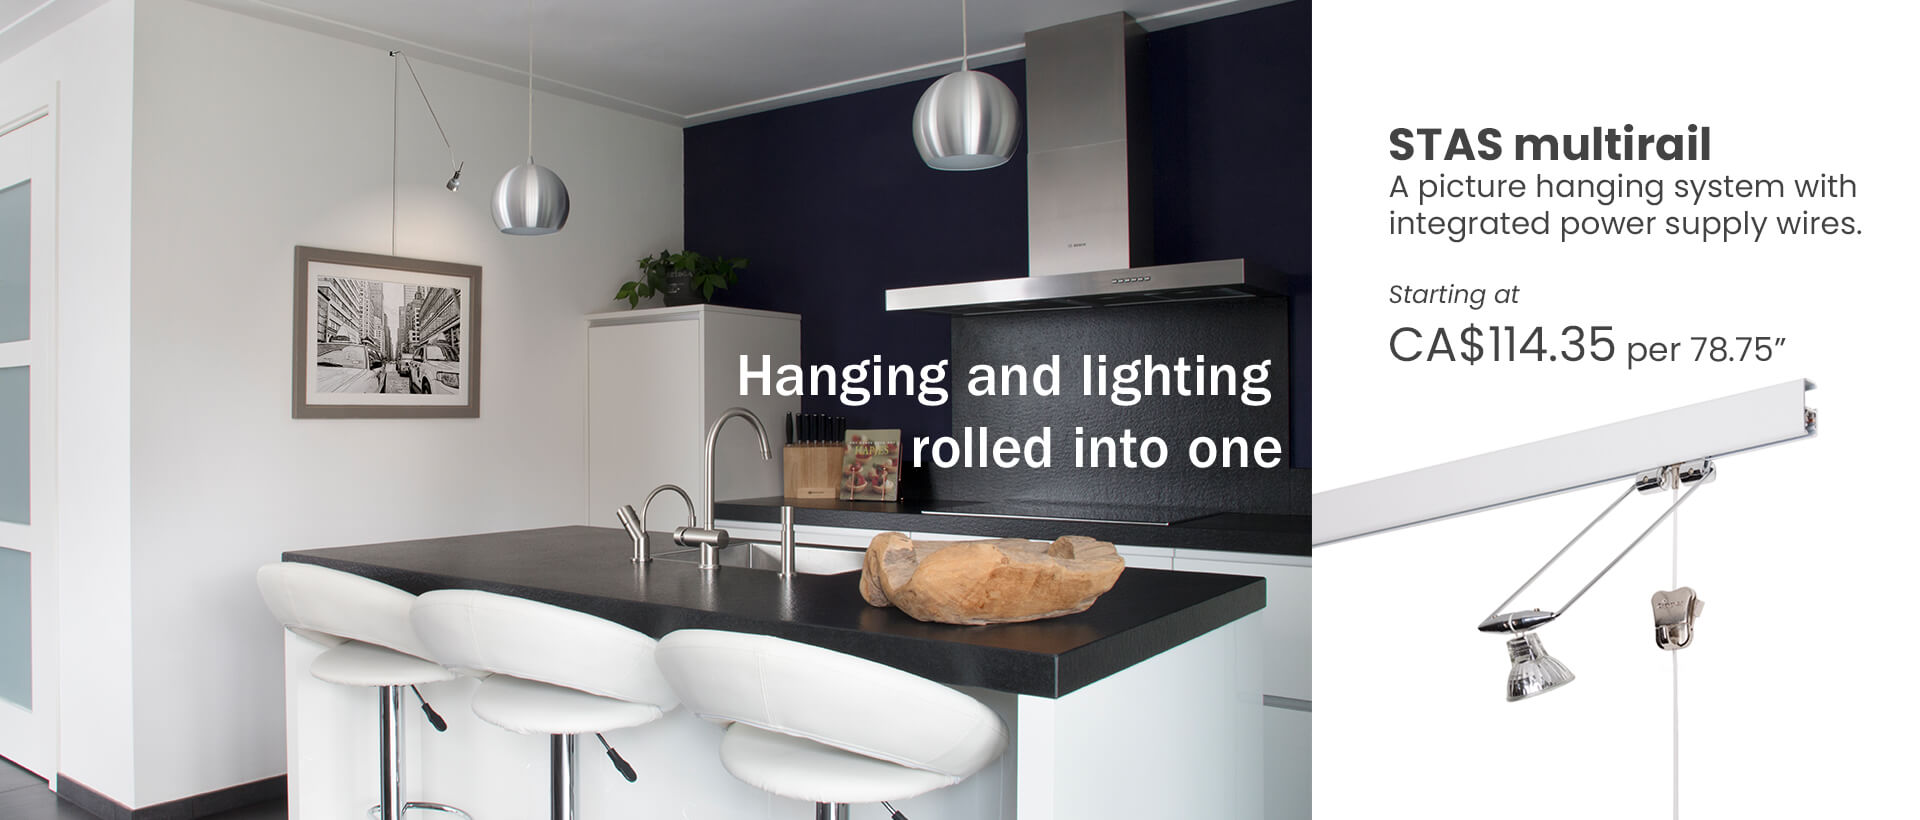 Picture hanging system with lighting